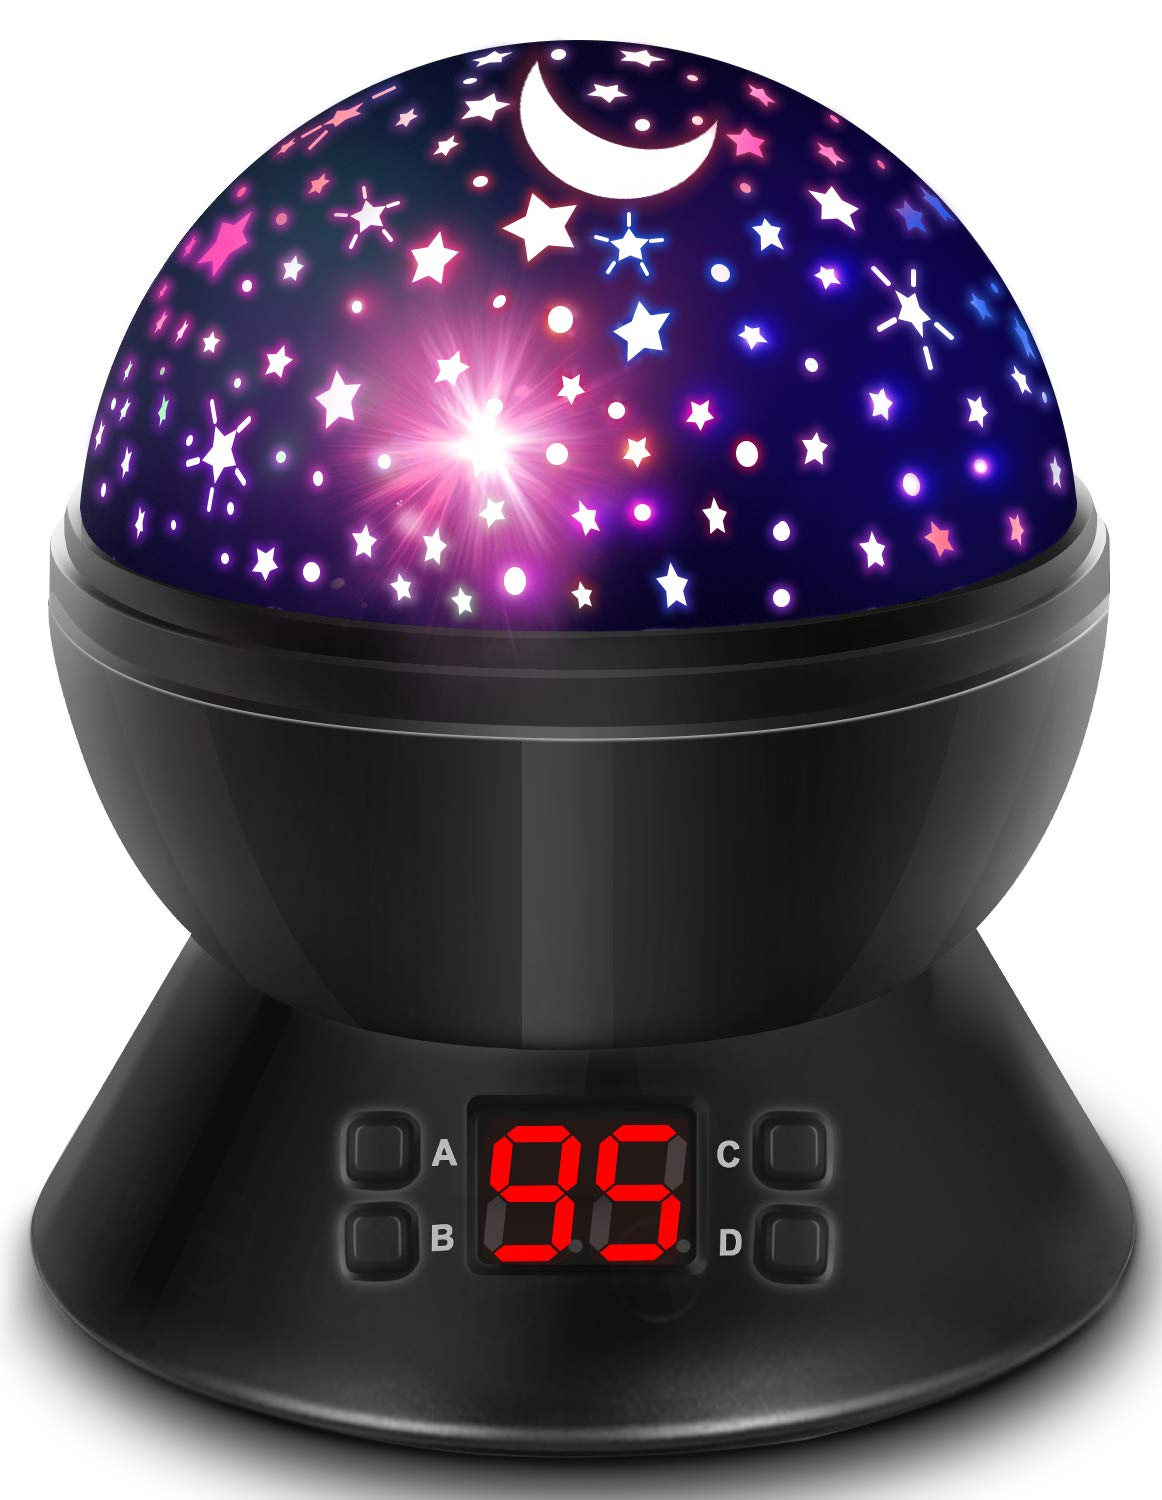 Star Projector for Kids Boys and Girls Gifts, Night Lights for Kids with Timer